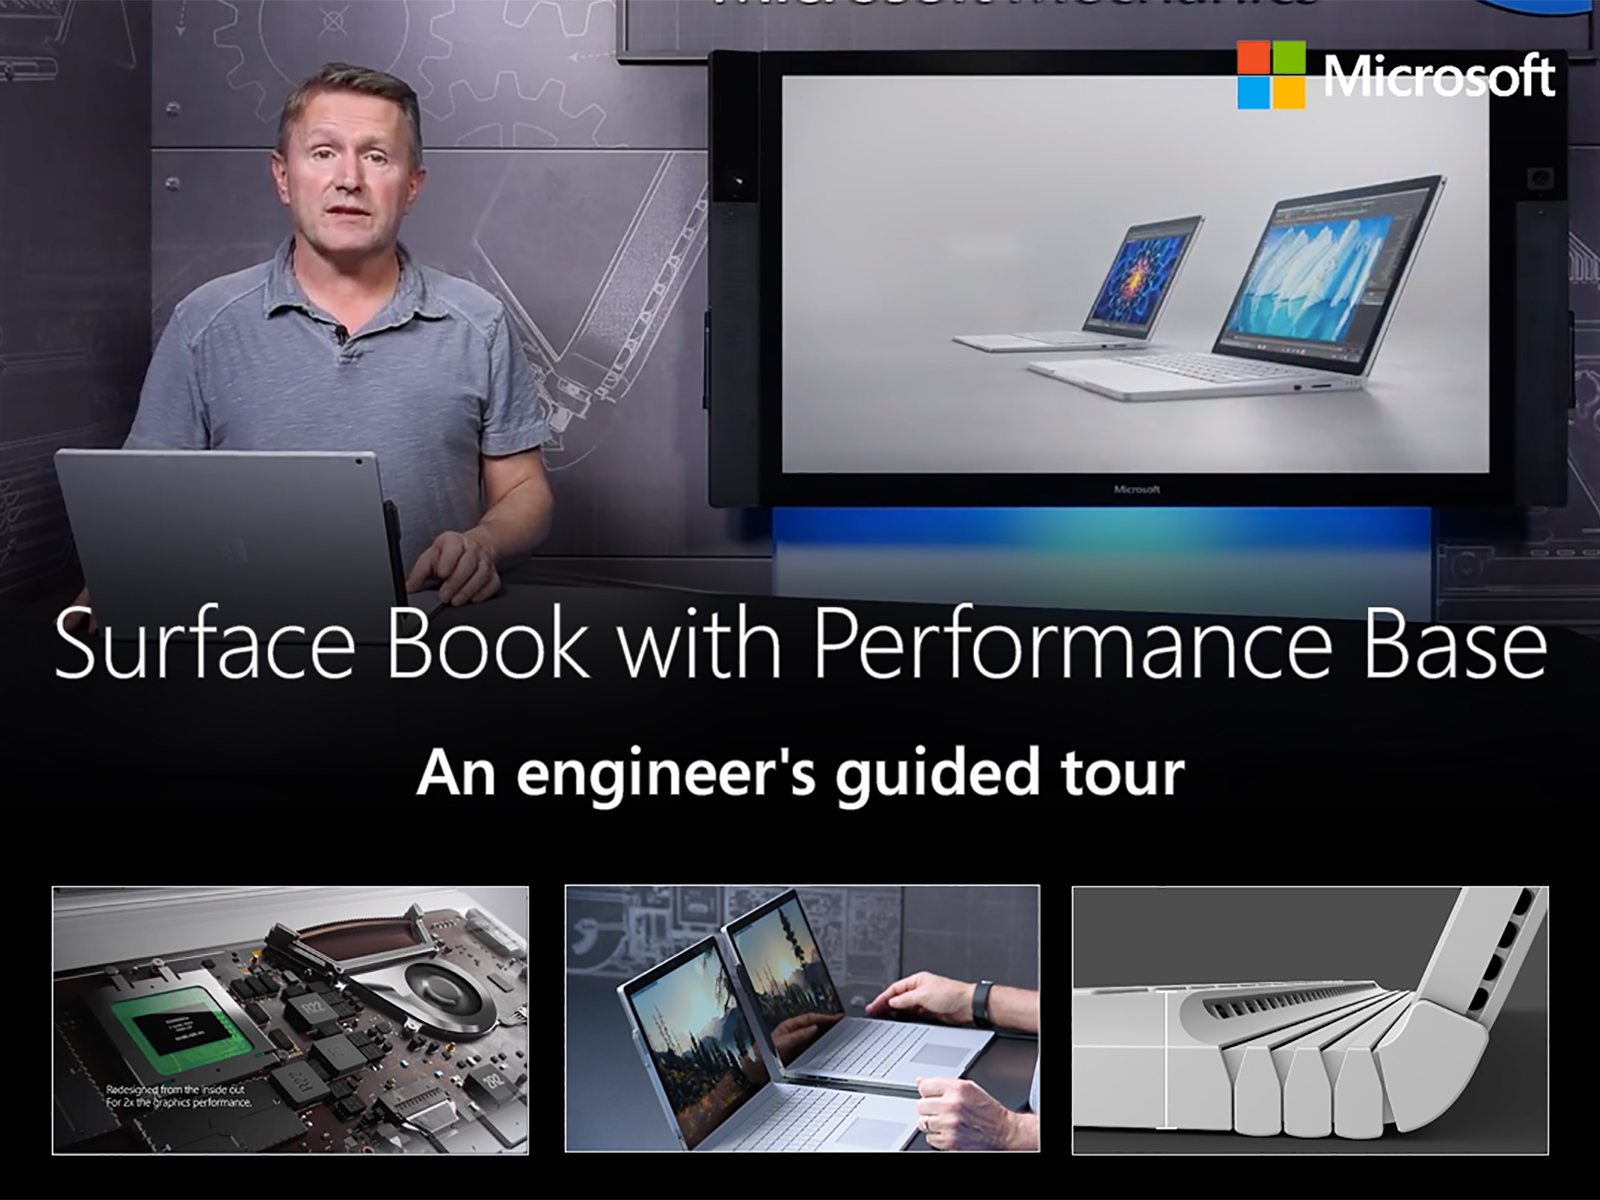 Artwork for The new Surface Book with Performance Base, an engineer's guided tour